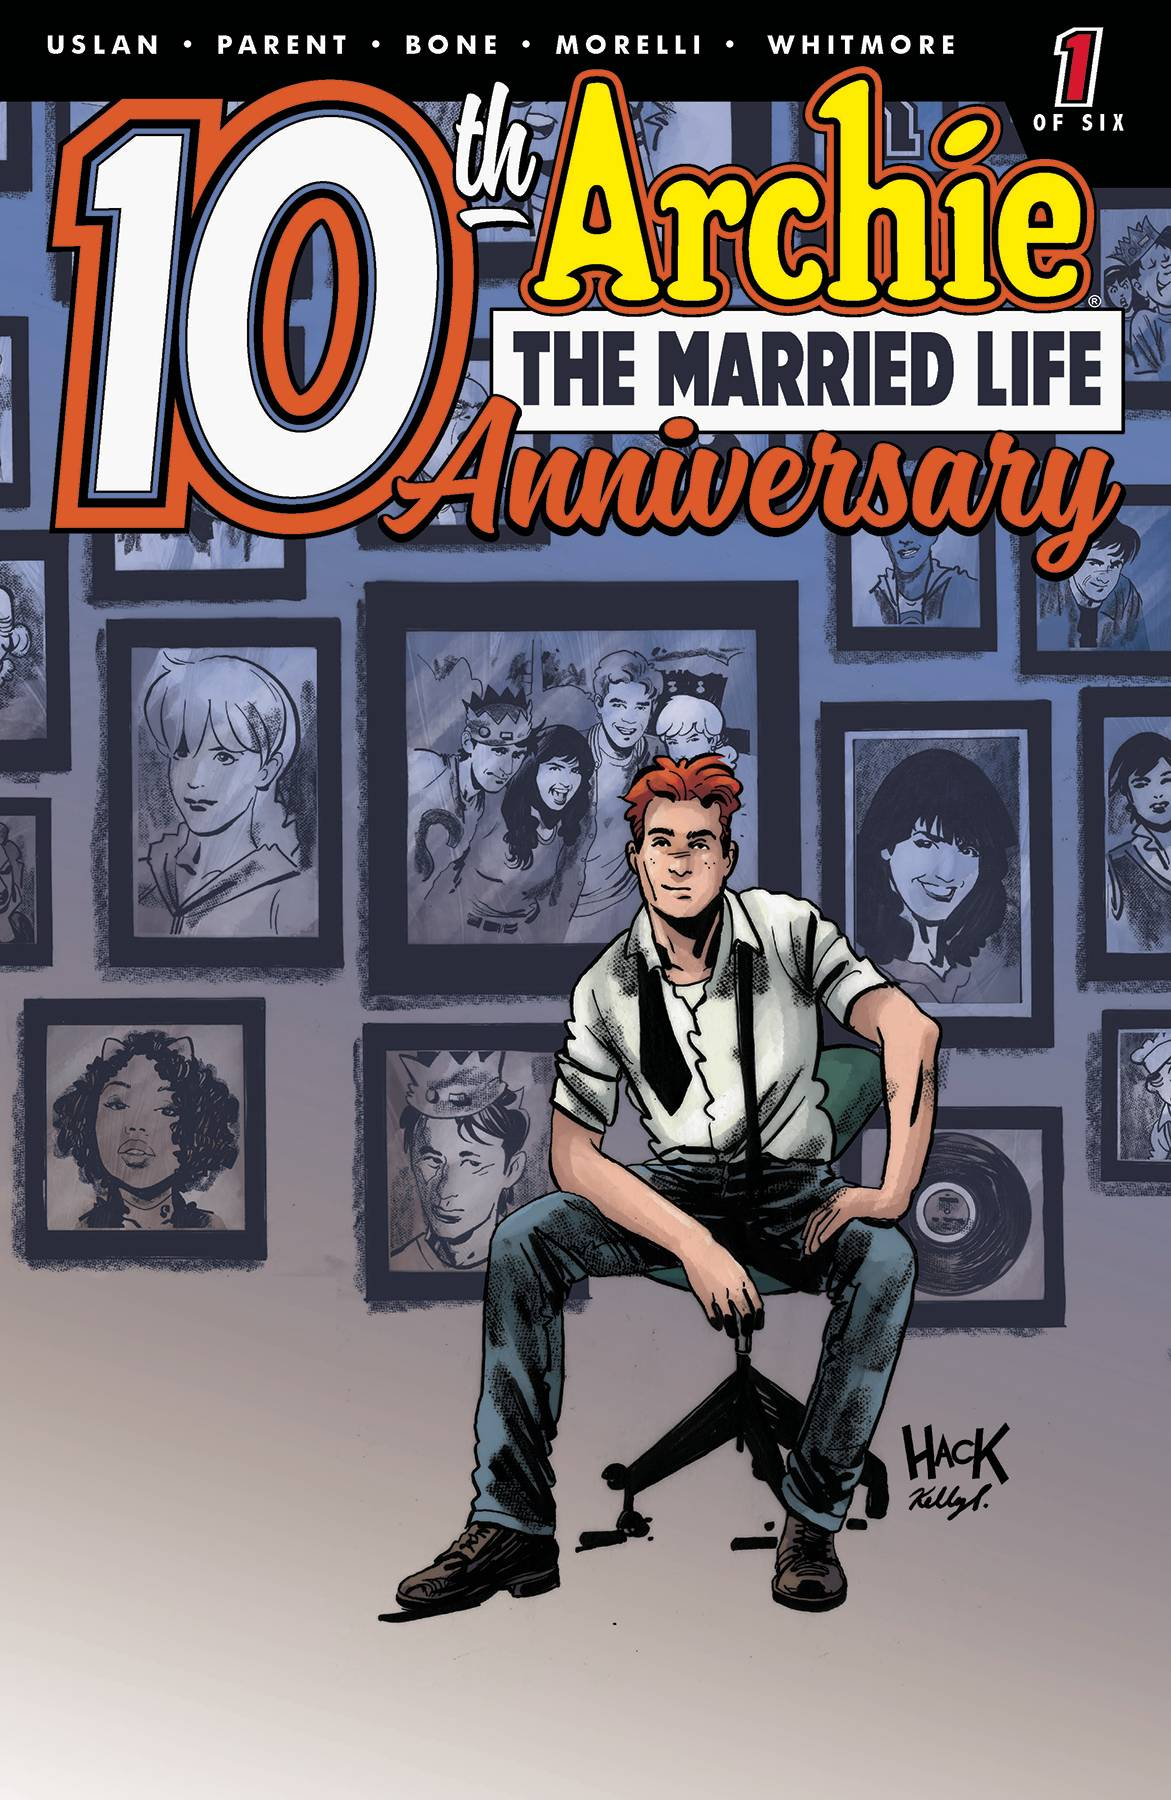 ARCHIE MARRIED LIFE 10 YEARS LATER 1 CVR D HACK.jpg